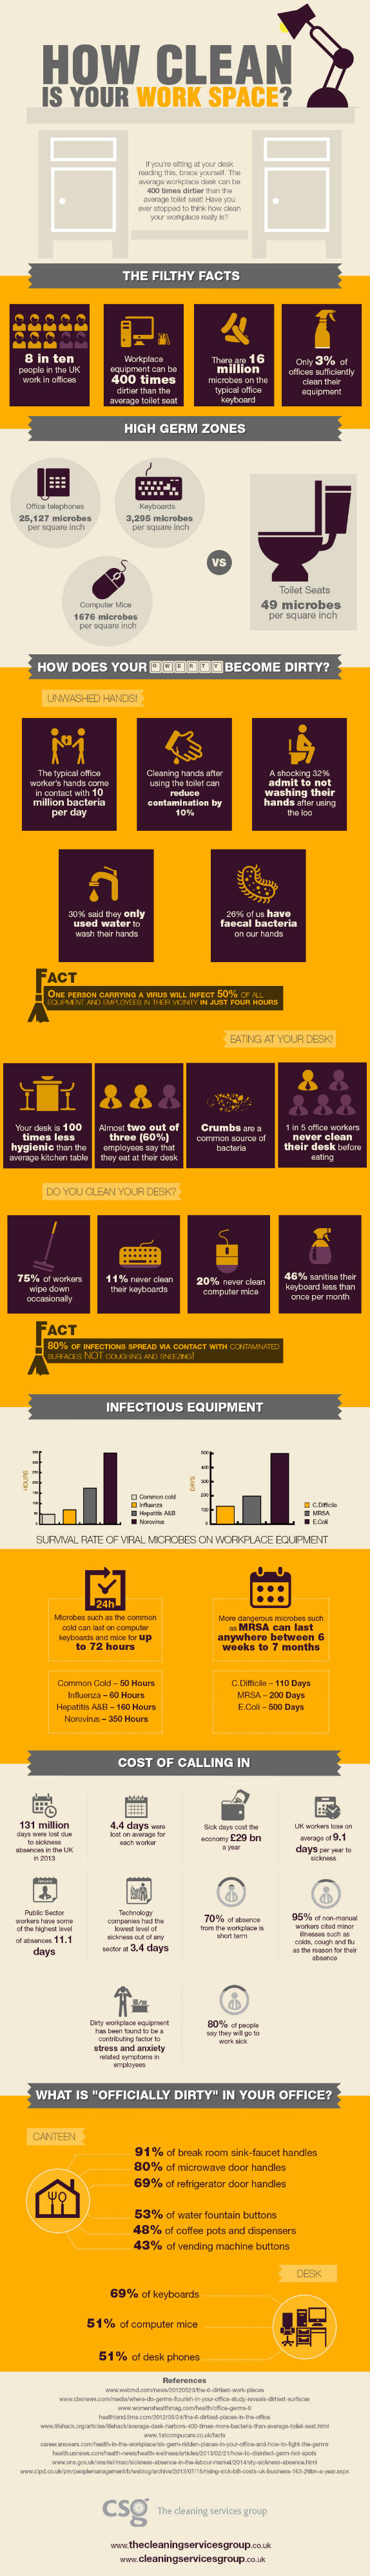 How Clean is Your Work Space? [Infographic]